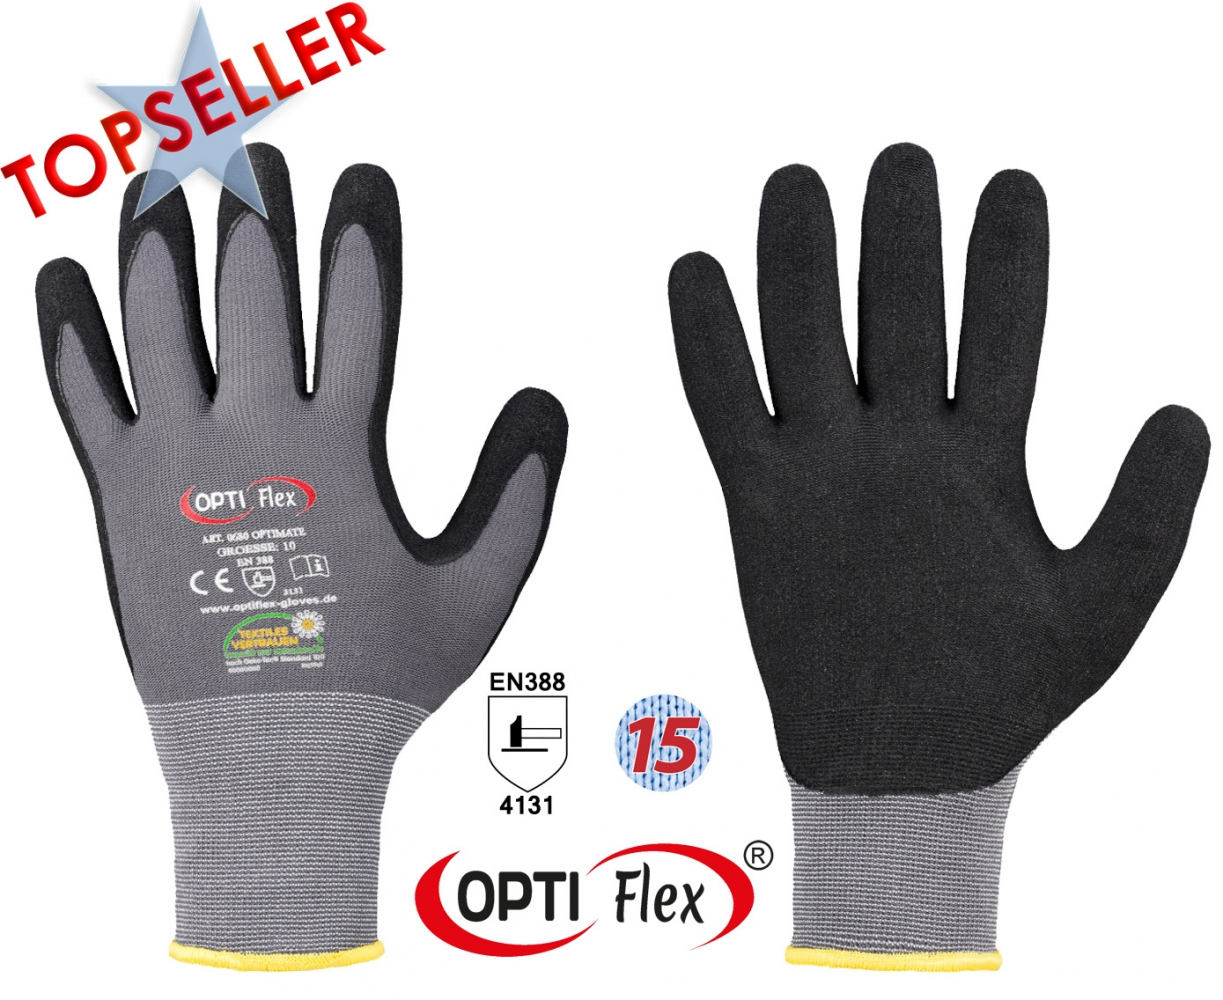 pics/Feldtmann 2016/E.I.S. Topseller/optiflex-0680-optimate-breathing-working-gloves-for-mechanics-en388-topseller.jpg